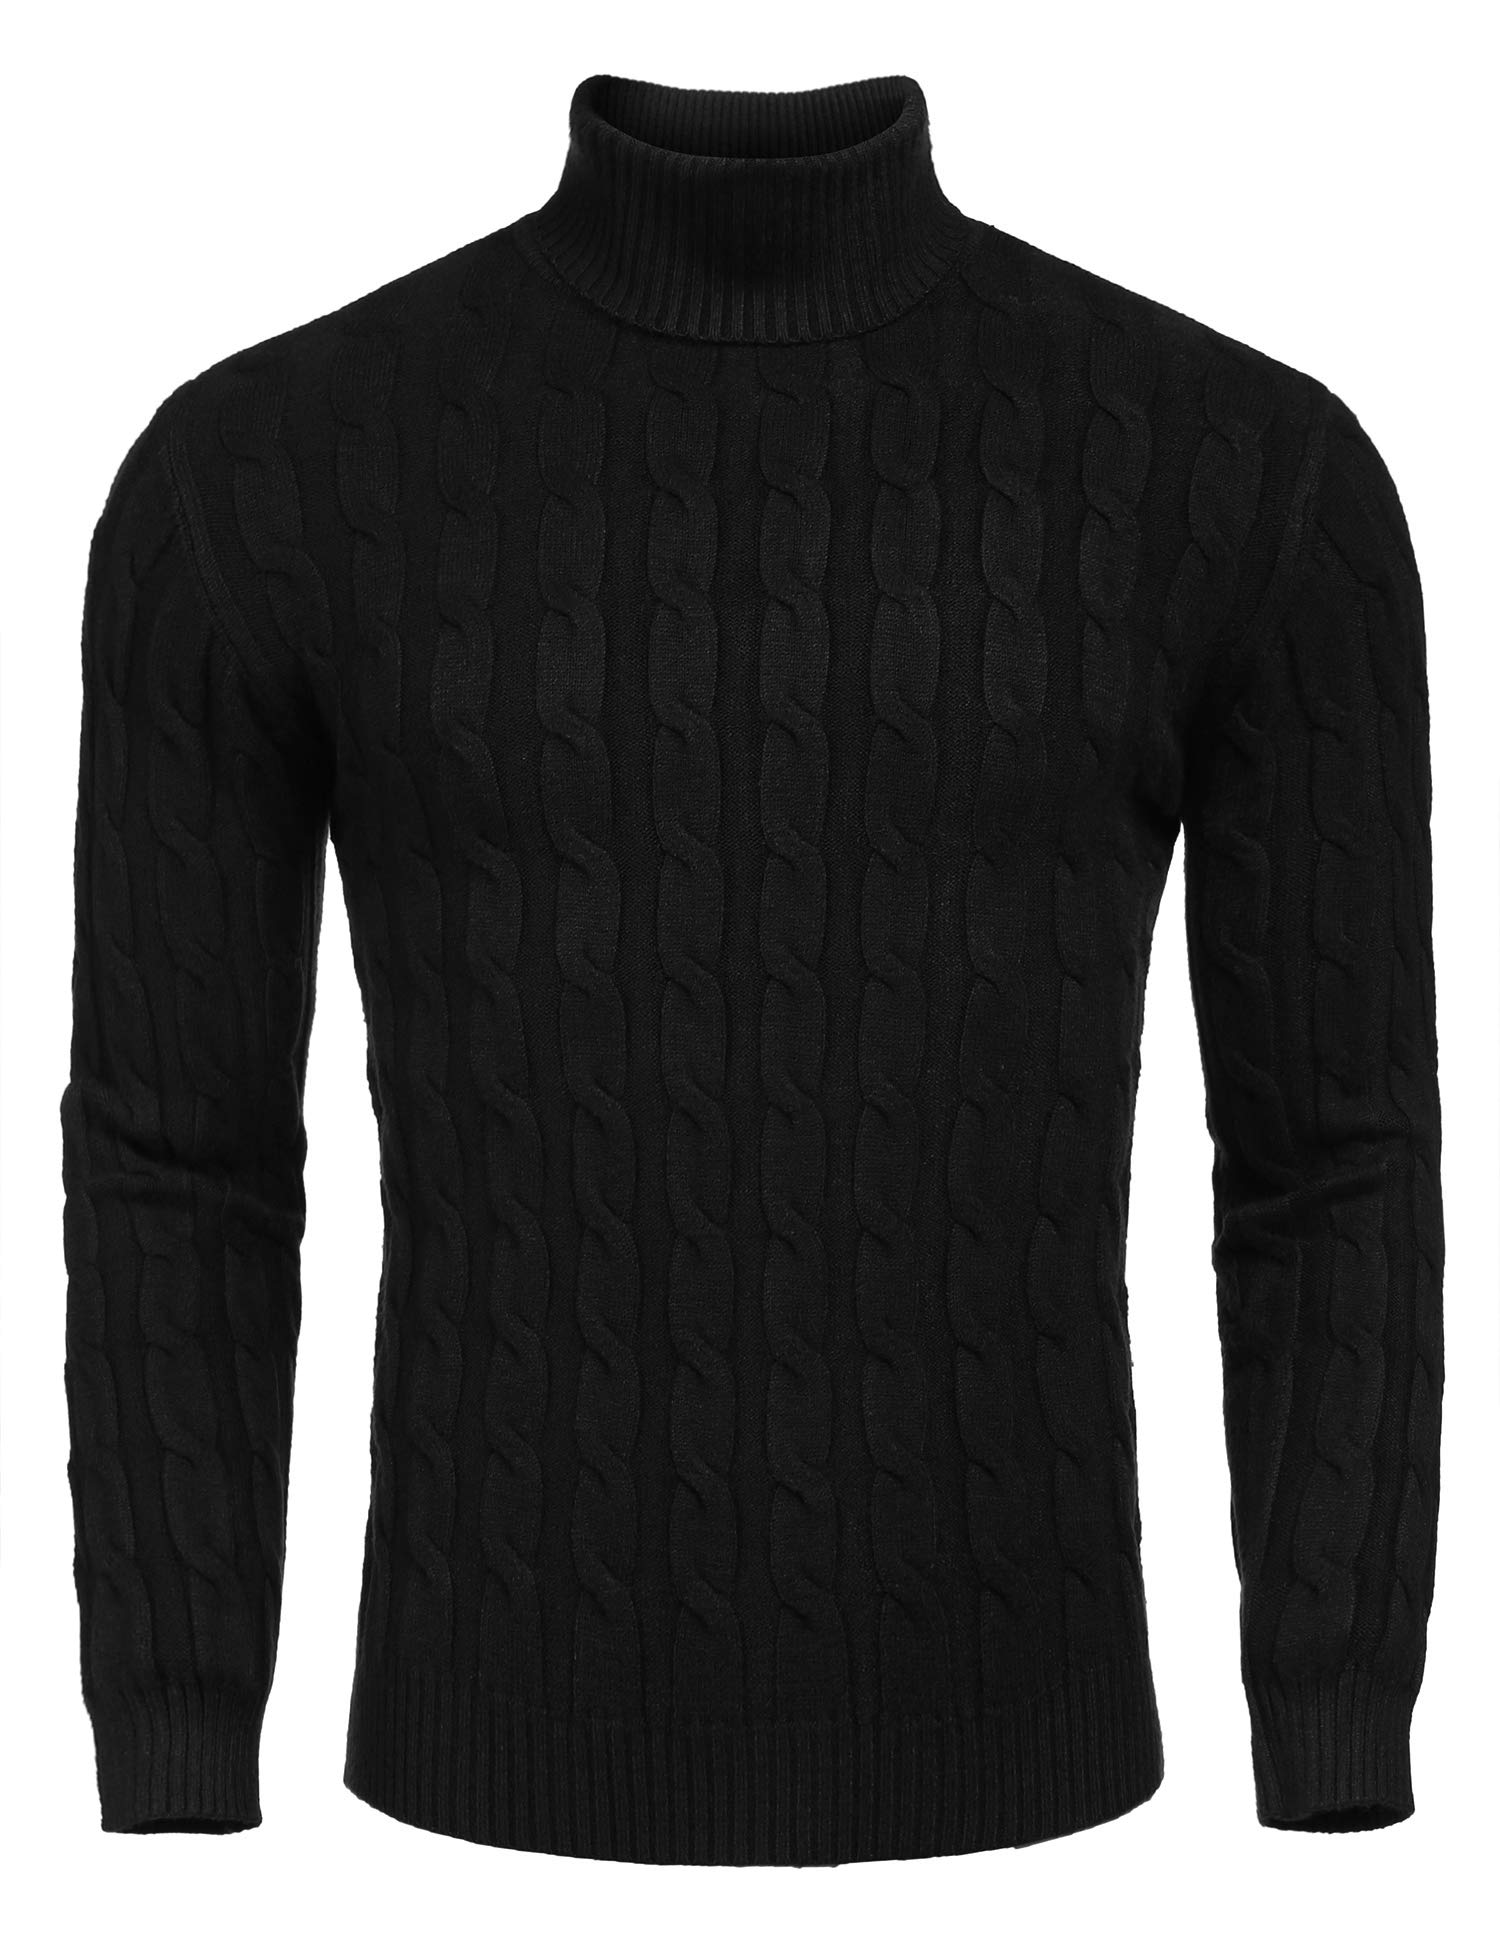 COOFANDY Men's Slim Fit Knitted Pullover Ribbed Turtleneck Sweater, Black, Small